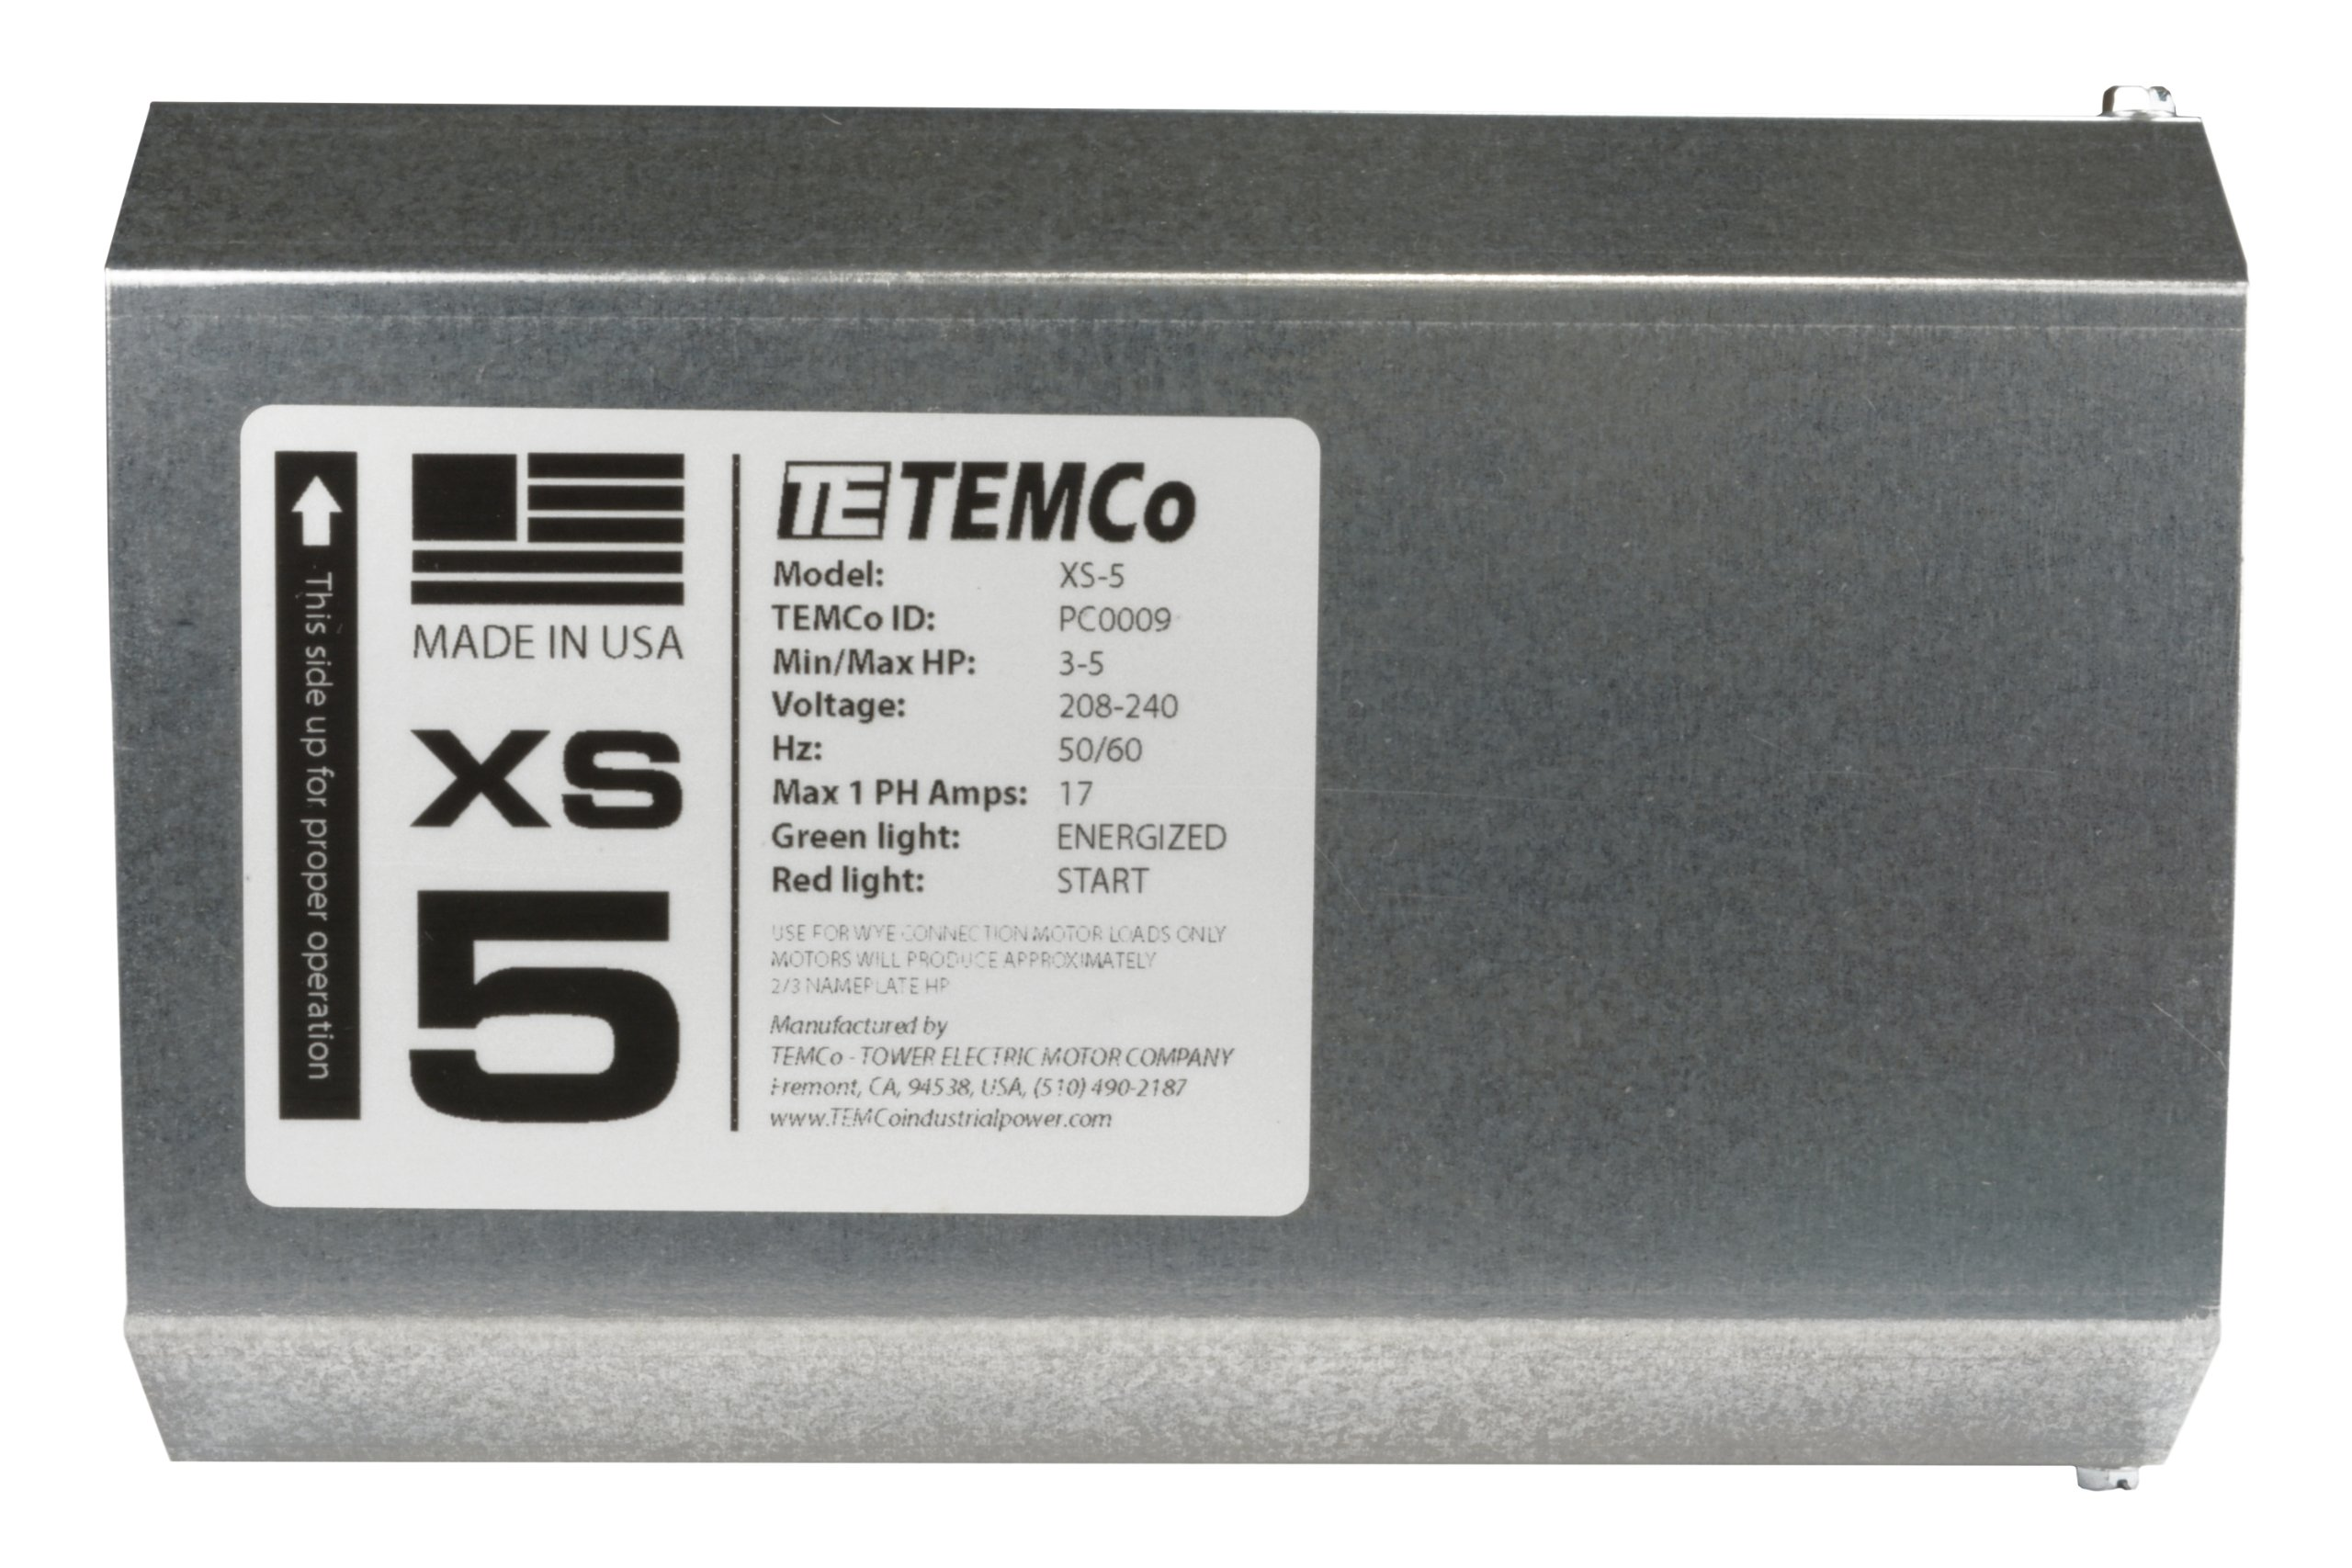 TEMCo XS5 Static Phase Converter PC0010 - HD 3 - 5 HP Mill Drill Saw MADE IN USA Single to three 5 Year Warranty